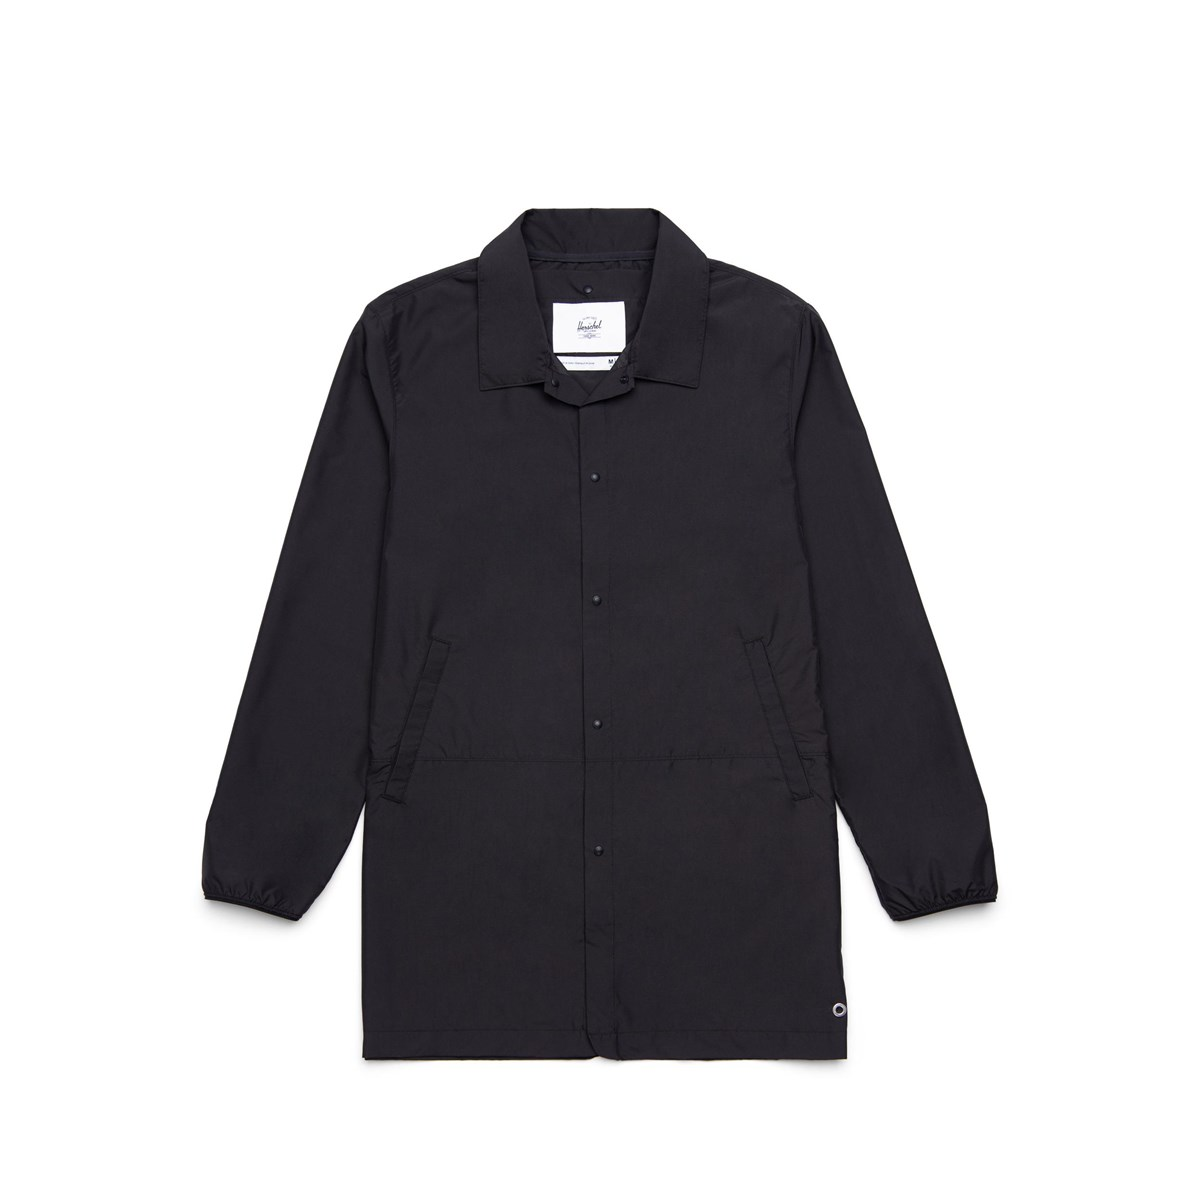 Men's Long Coach Jacket in Black